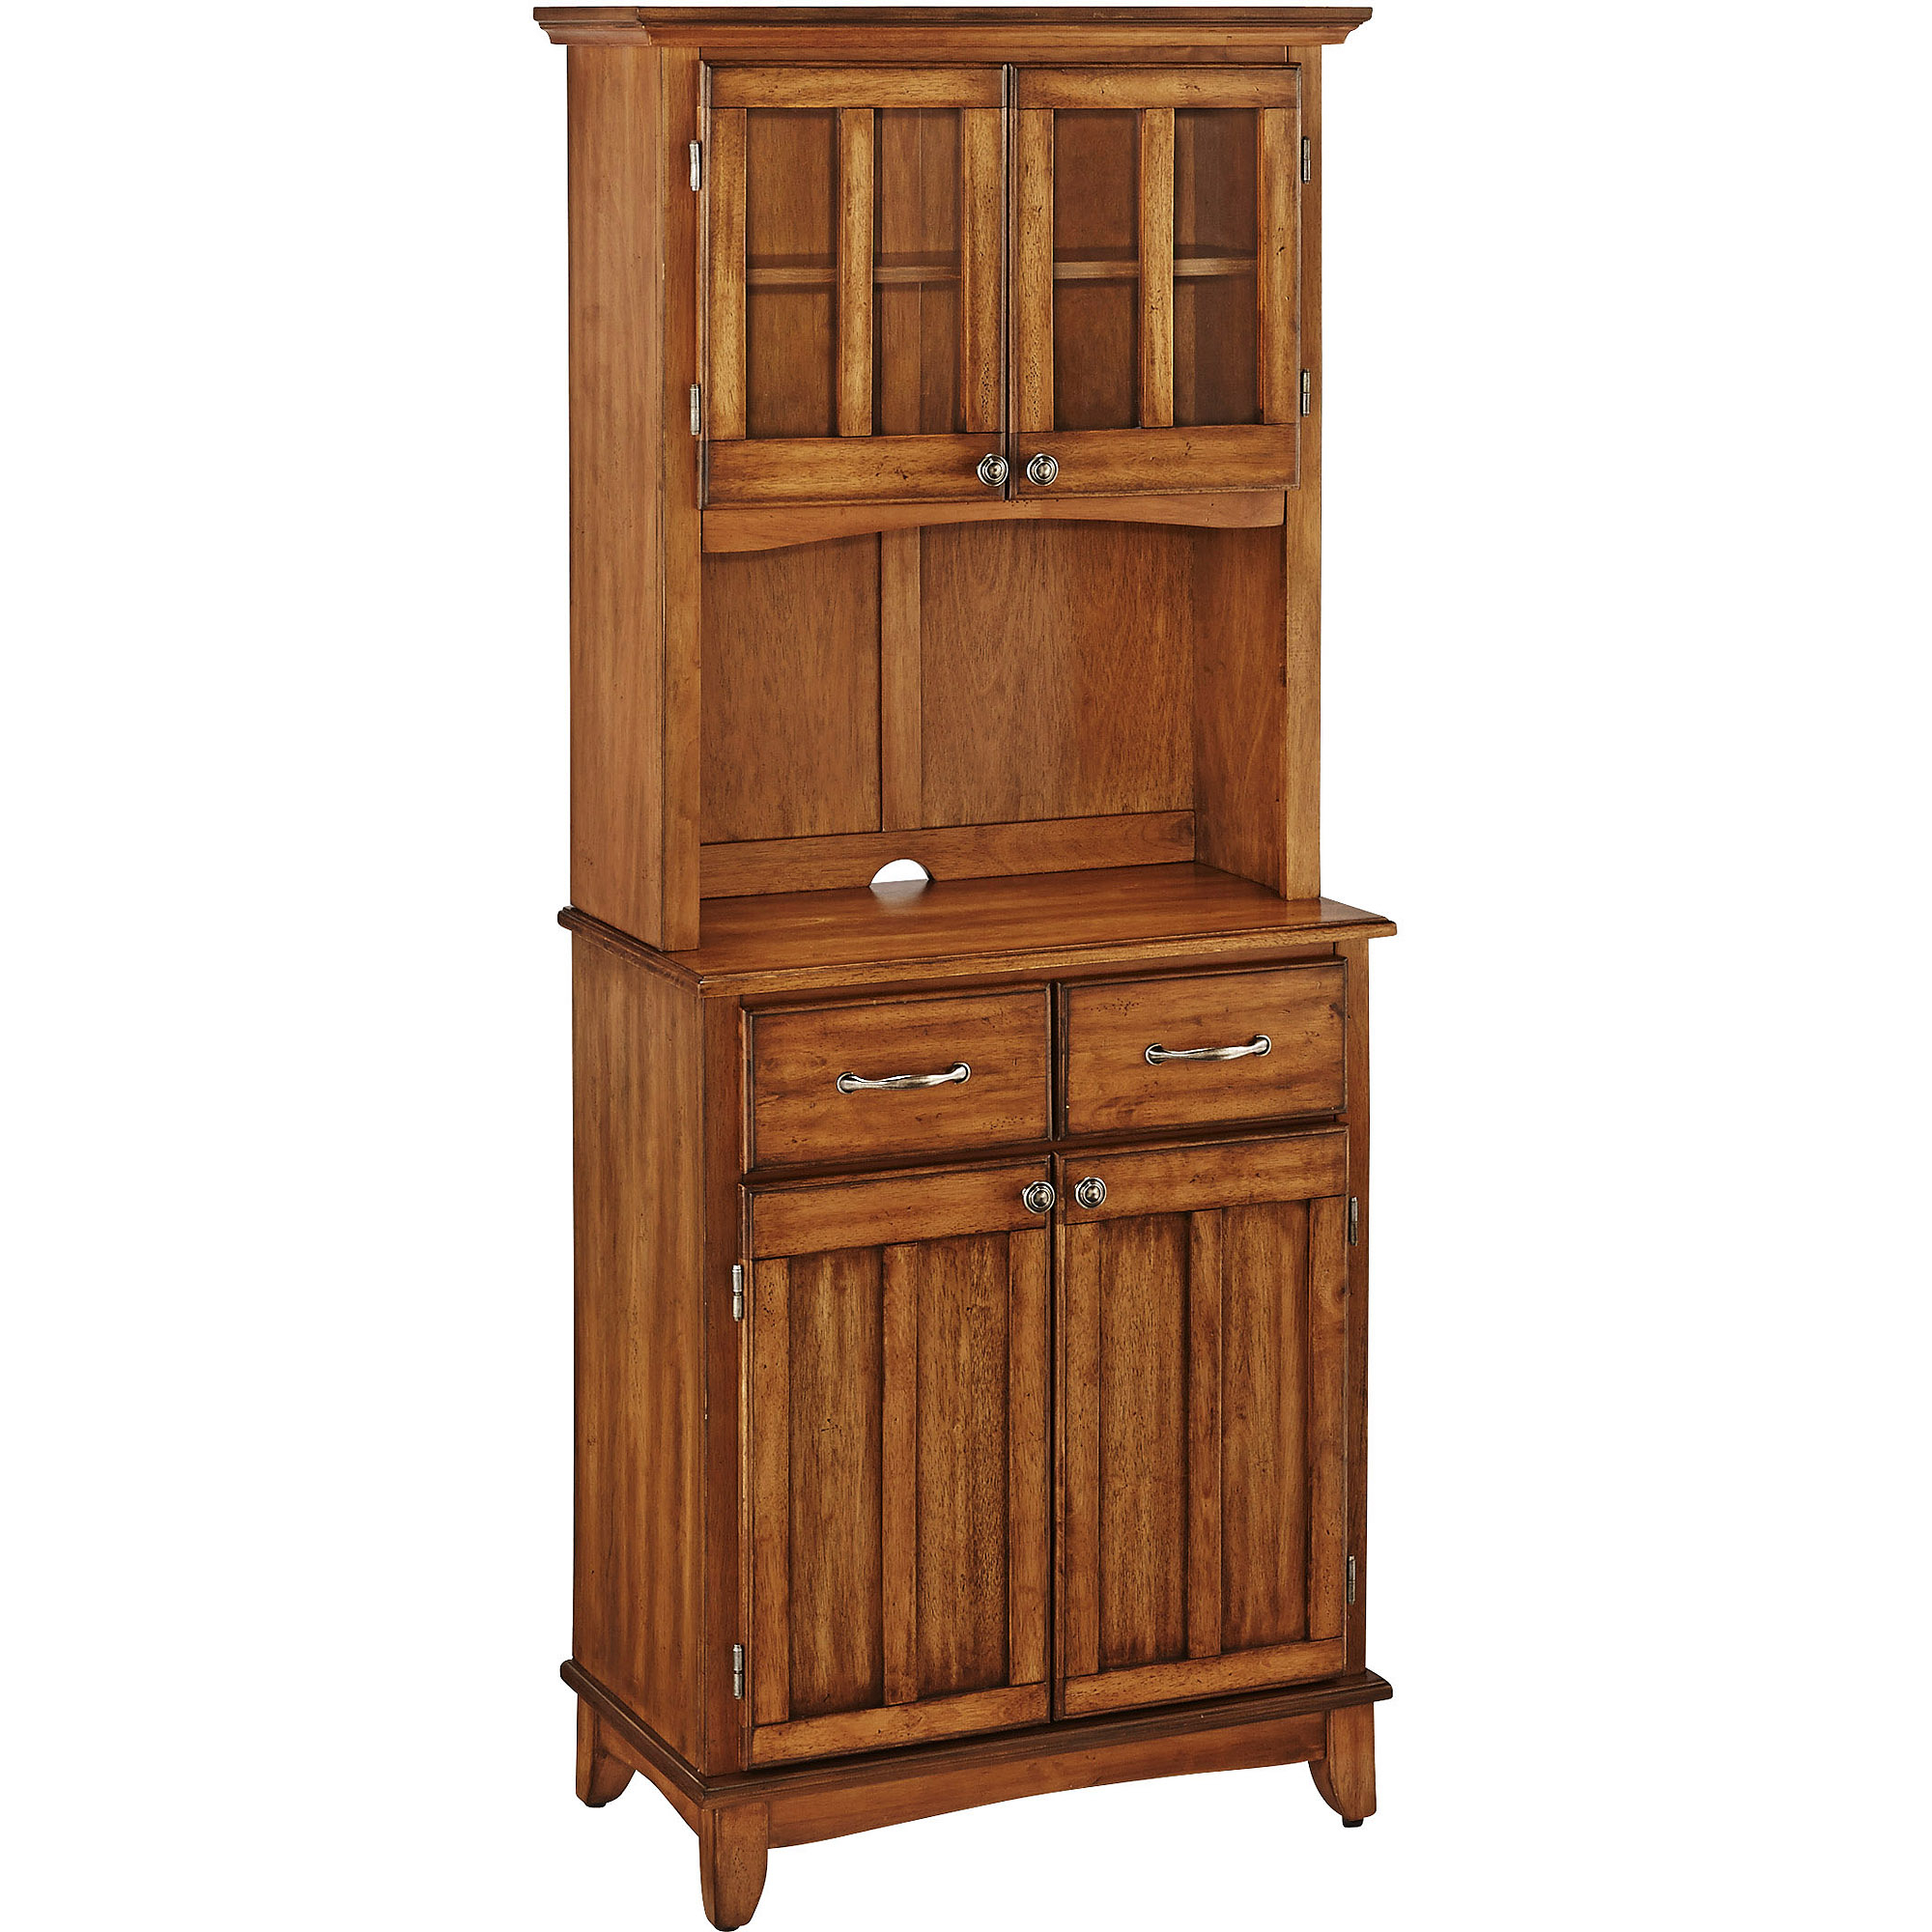 Home Styles Small Buffet With Two Door Hutch, Cottage Oak Finish – Walmart Within Contemporary Style Wooden Buffets With Two Side Door Storage Cabinets (View 14 of 30)